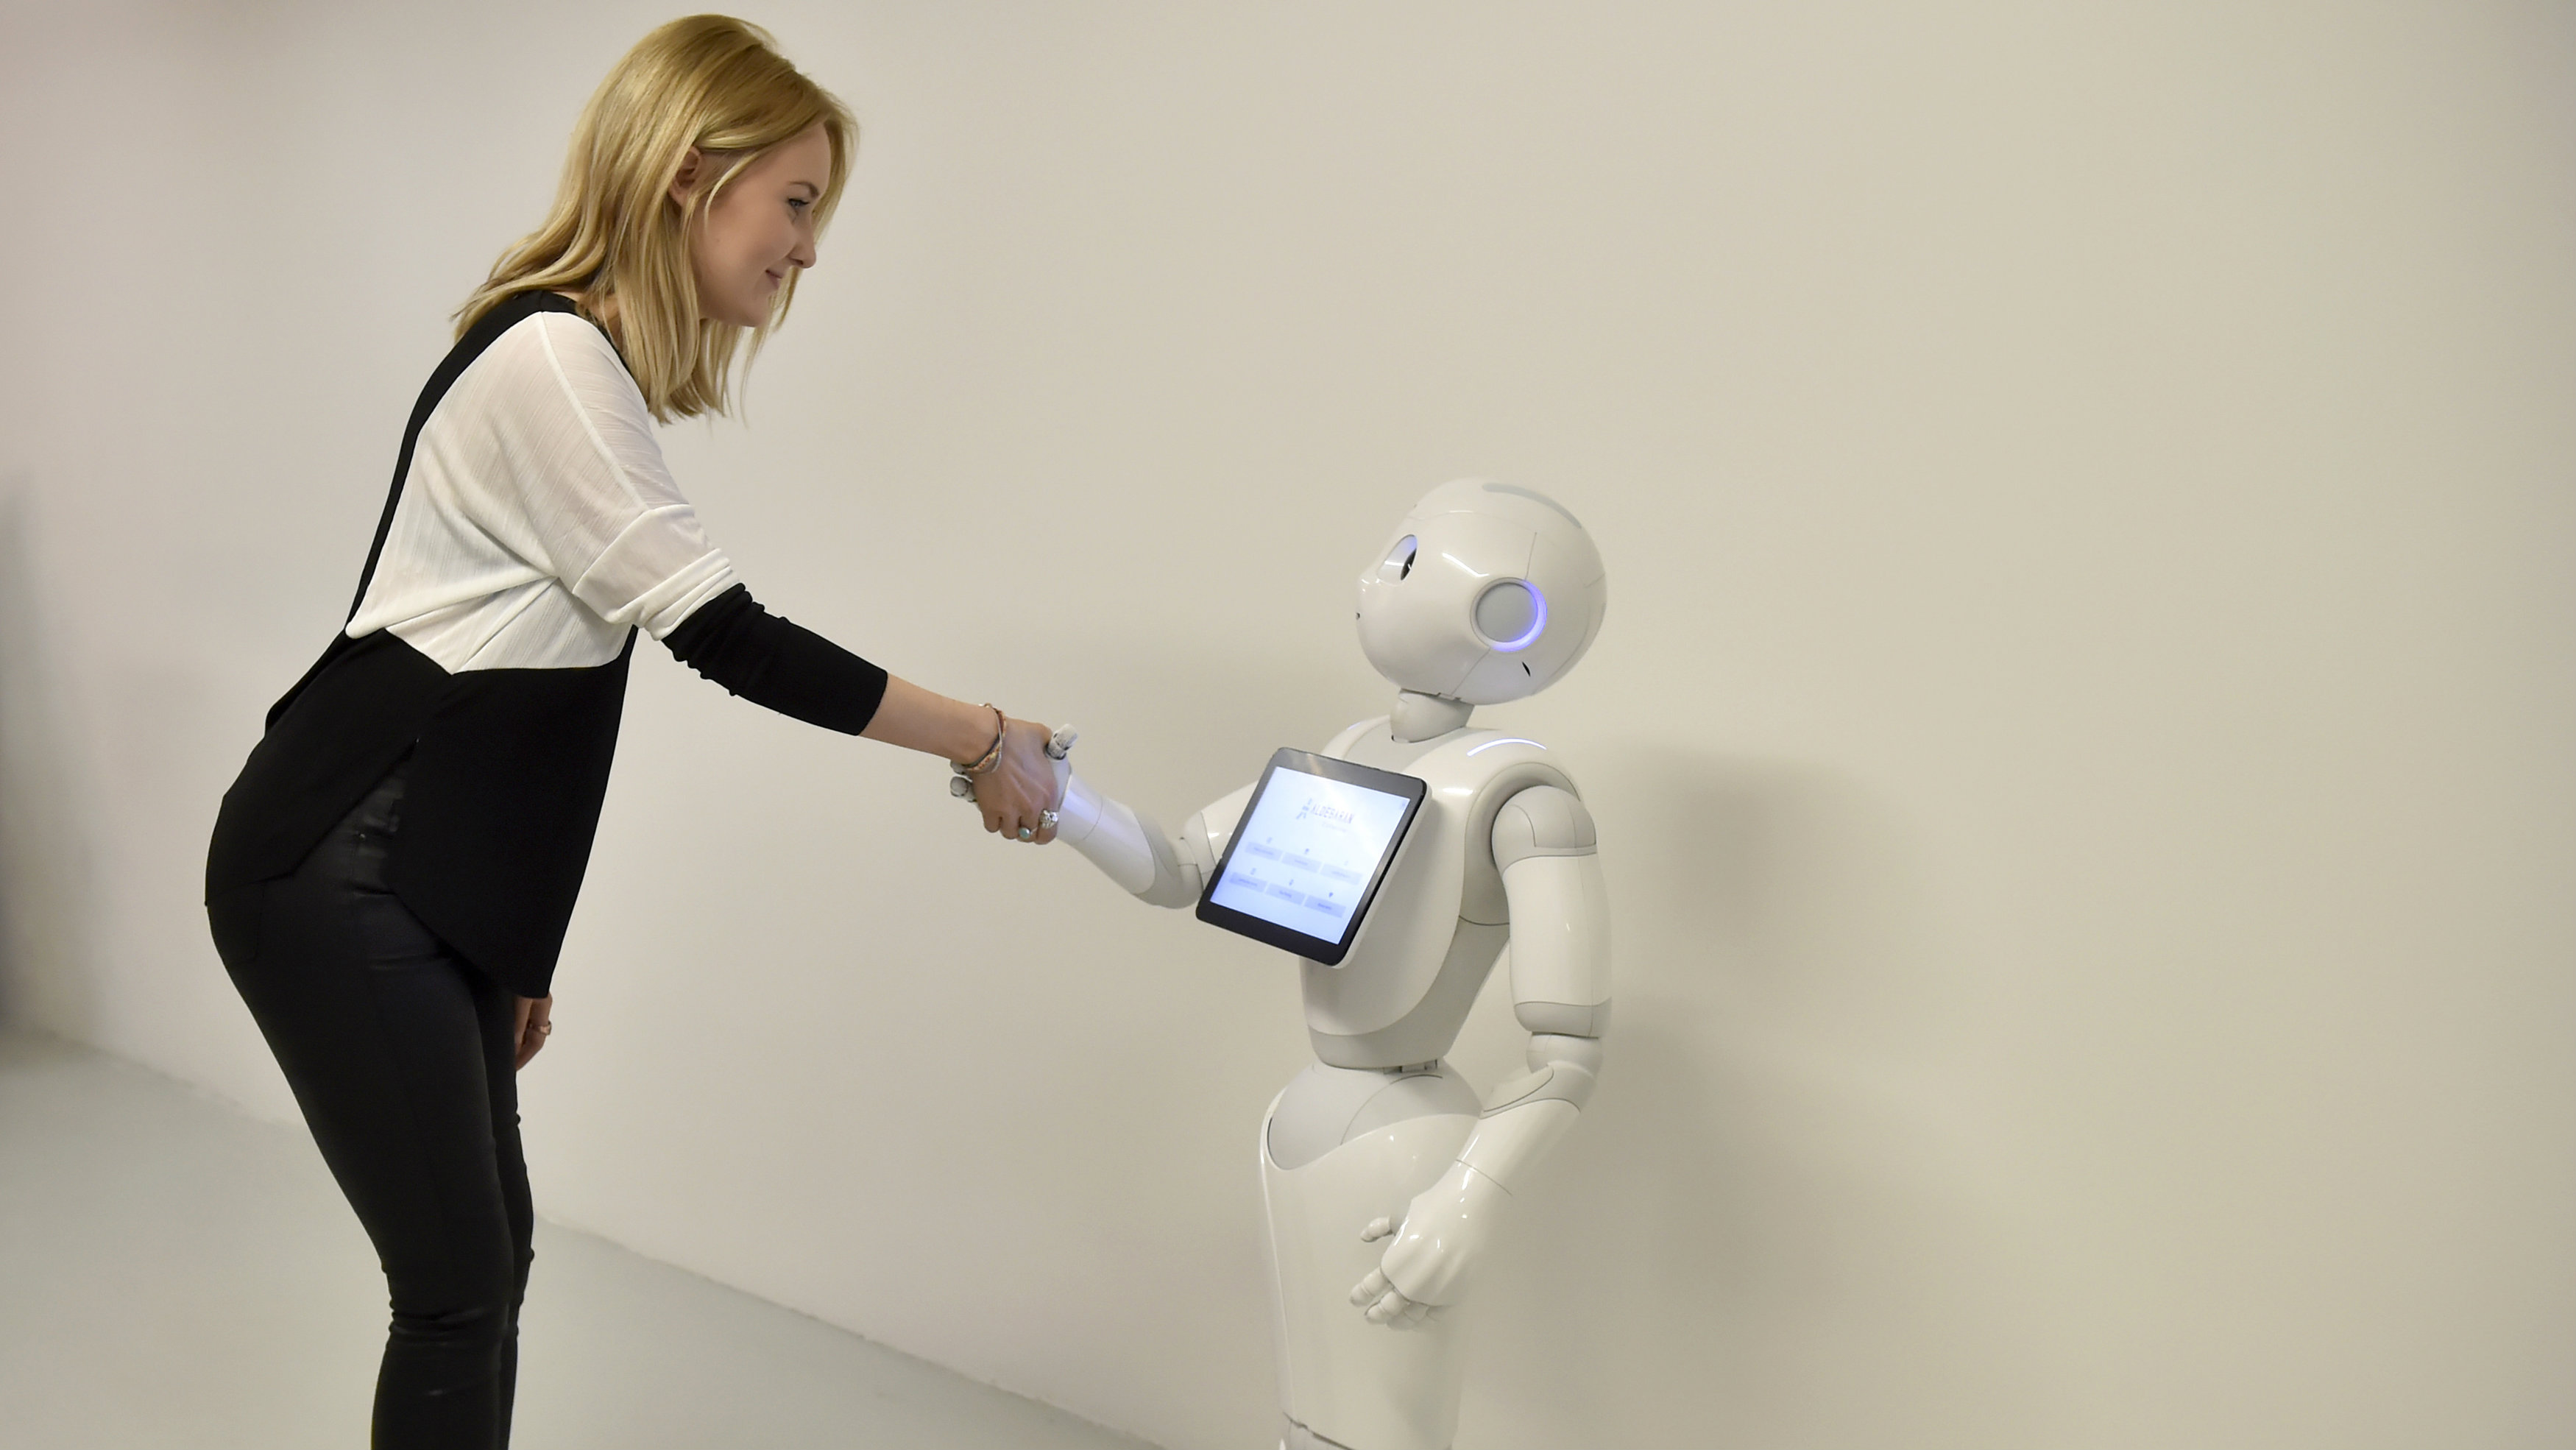 A press officer poses with 'Pepper' the Humanoid Robot at the 'World of Me: Store of the near future installation' in London, Britain, April 13, 2016. The robot is the first humanoid robot capable of recognising the principal human emotions and adapting his behaviour accordingly.